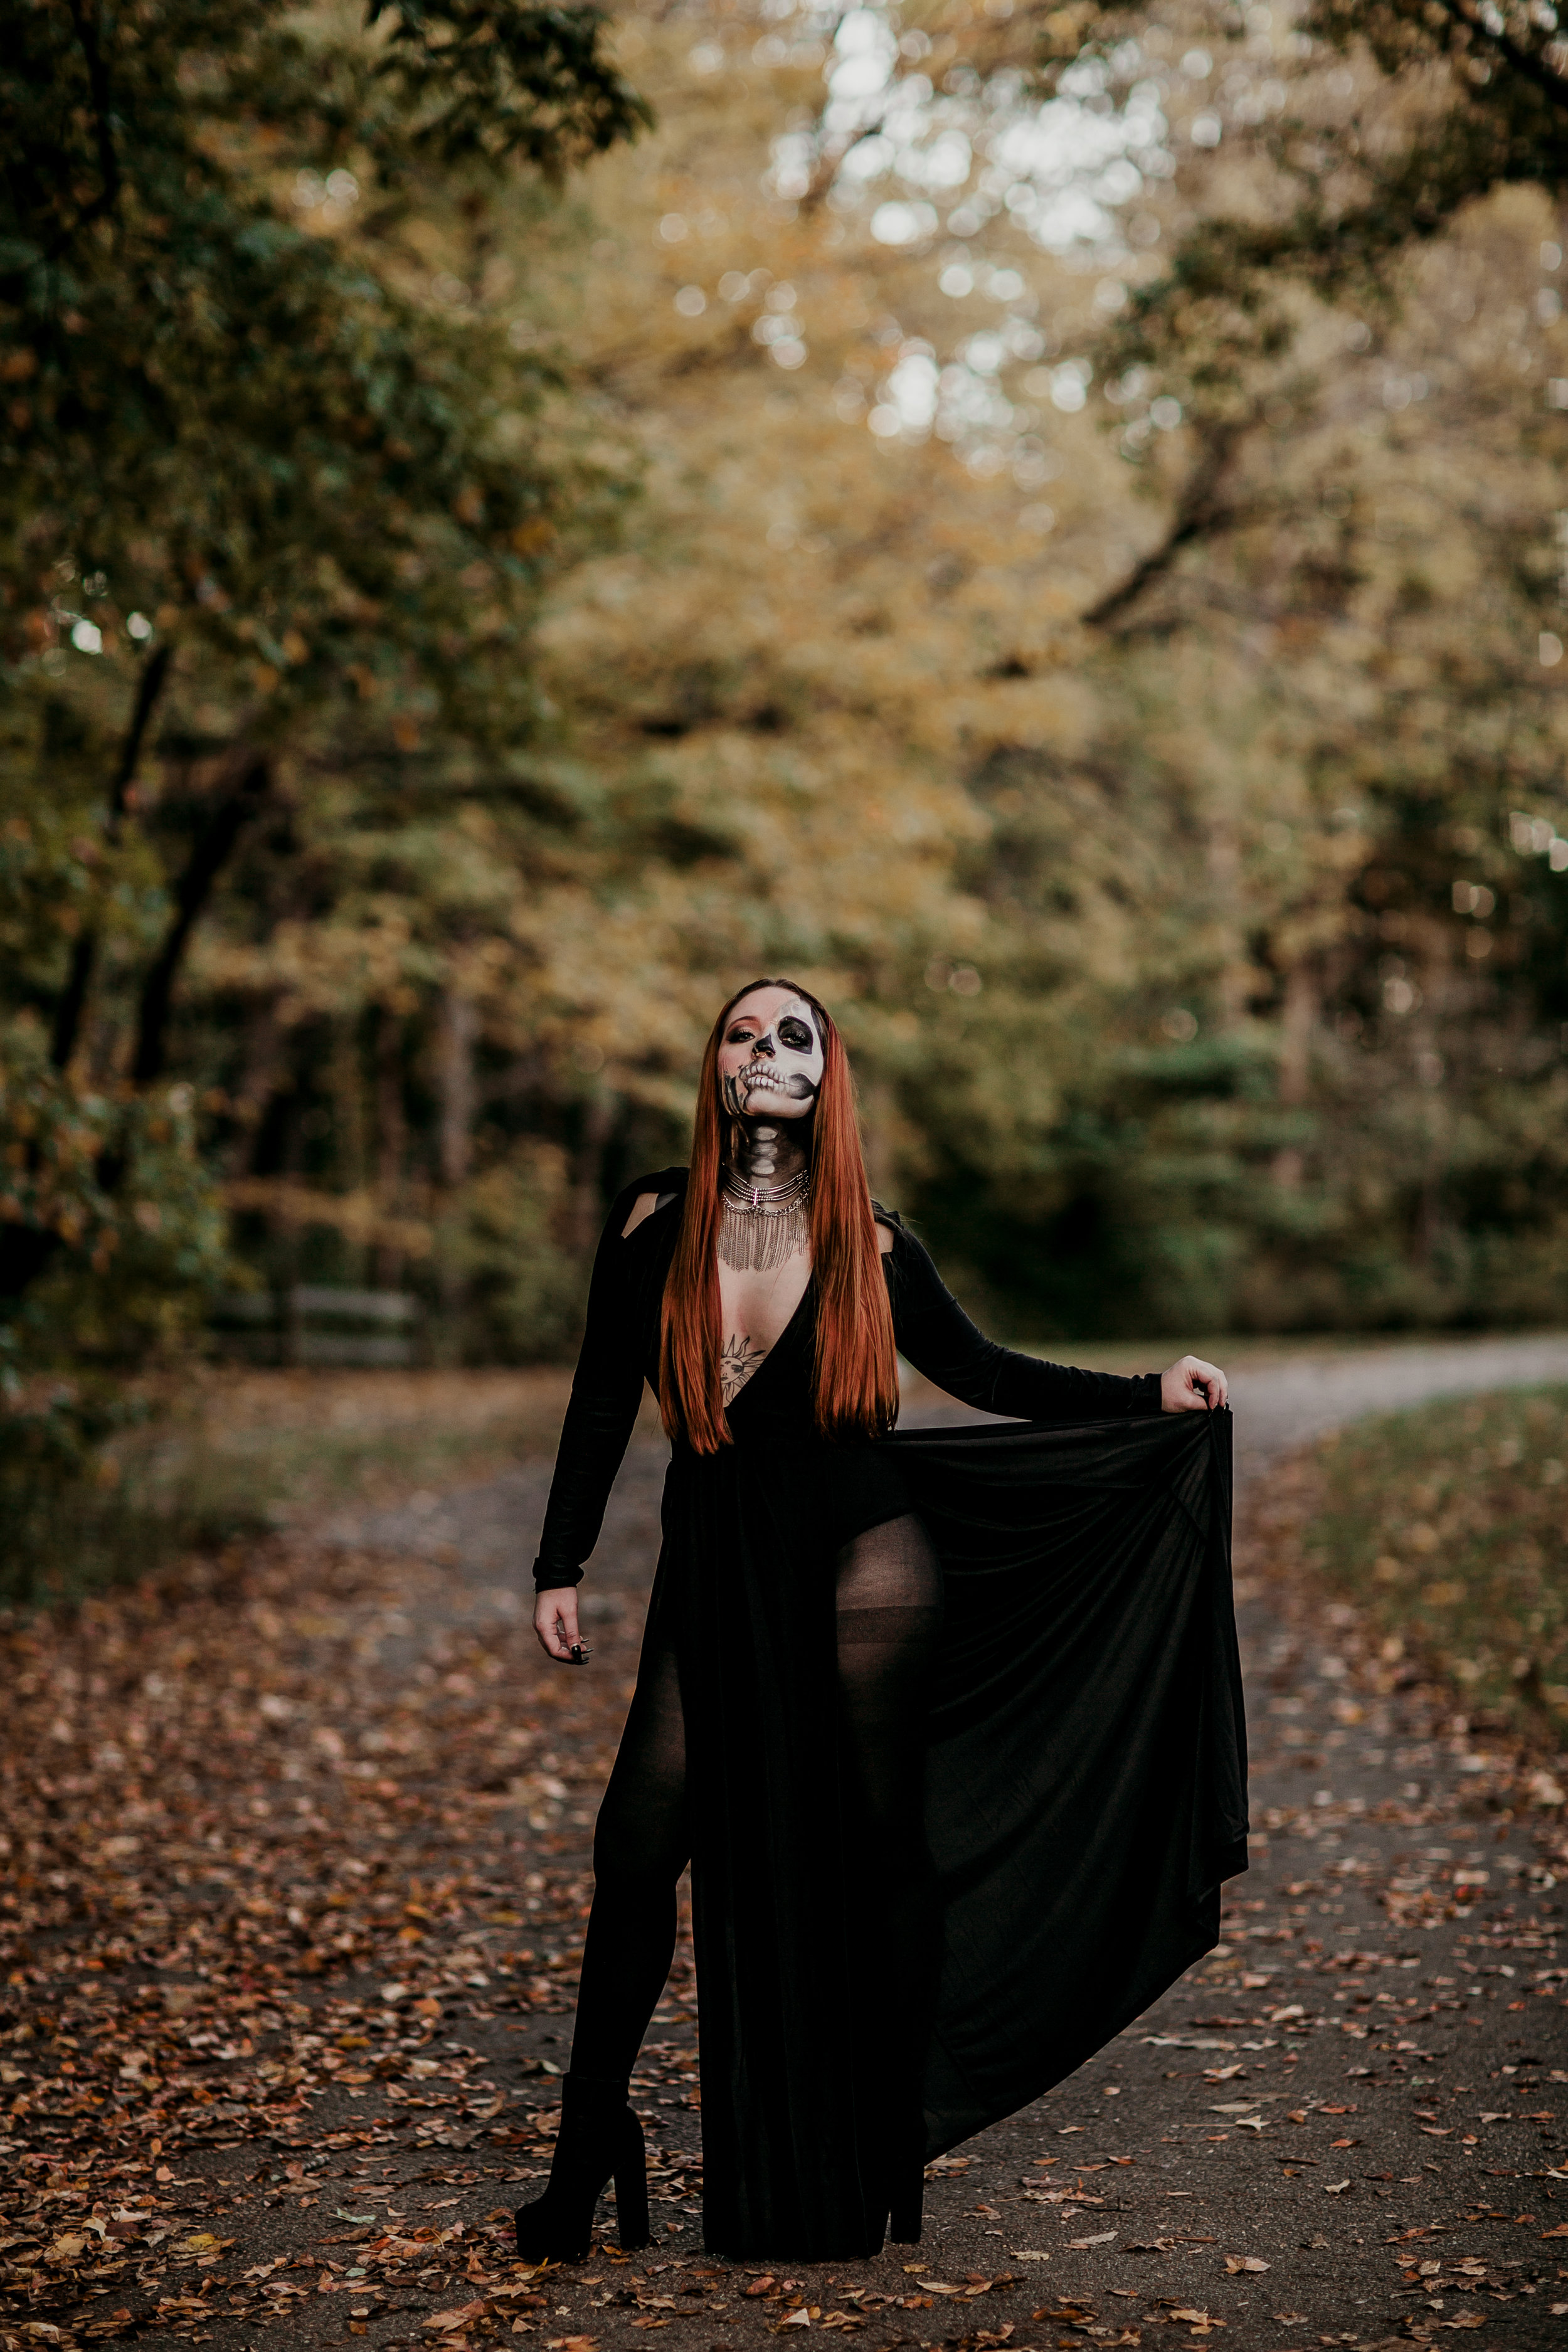 I never got around to sharing photos from this session (maybe I'll do a late Halloween post?) but this was one of my FAVORITES from October. Huge thank you to  Claire  for doing the makeup for us!! If you ever need a make-up artist, I highly recommend her!